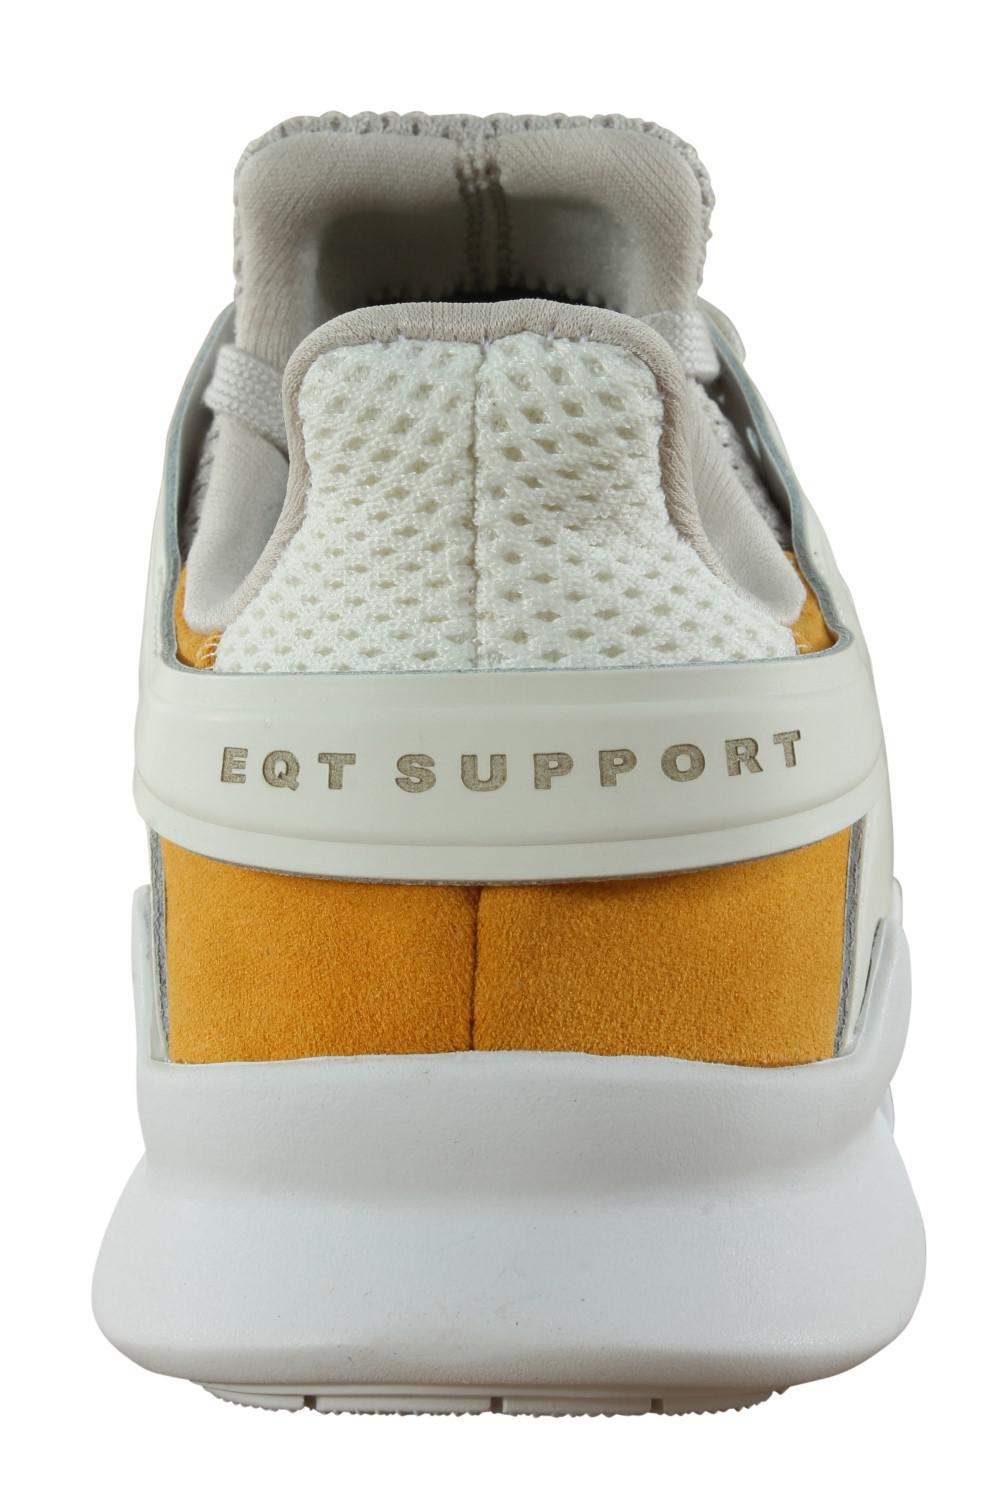 low priced 0f089 e672d BY9512 yeezy nmd Adidas originals Ac7141 Men Equipment Suppport Adv  Owhitecbr ...